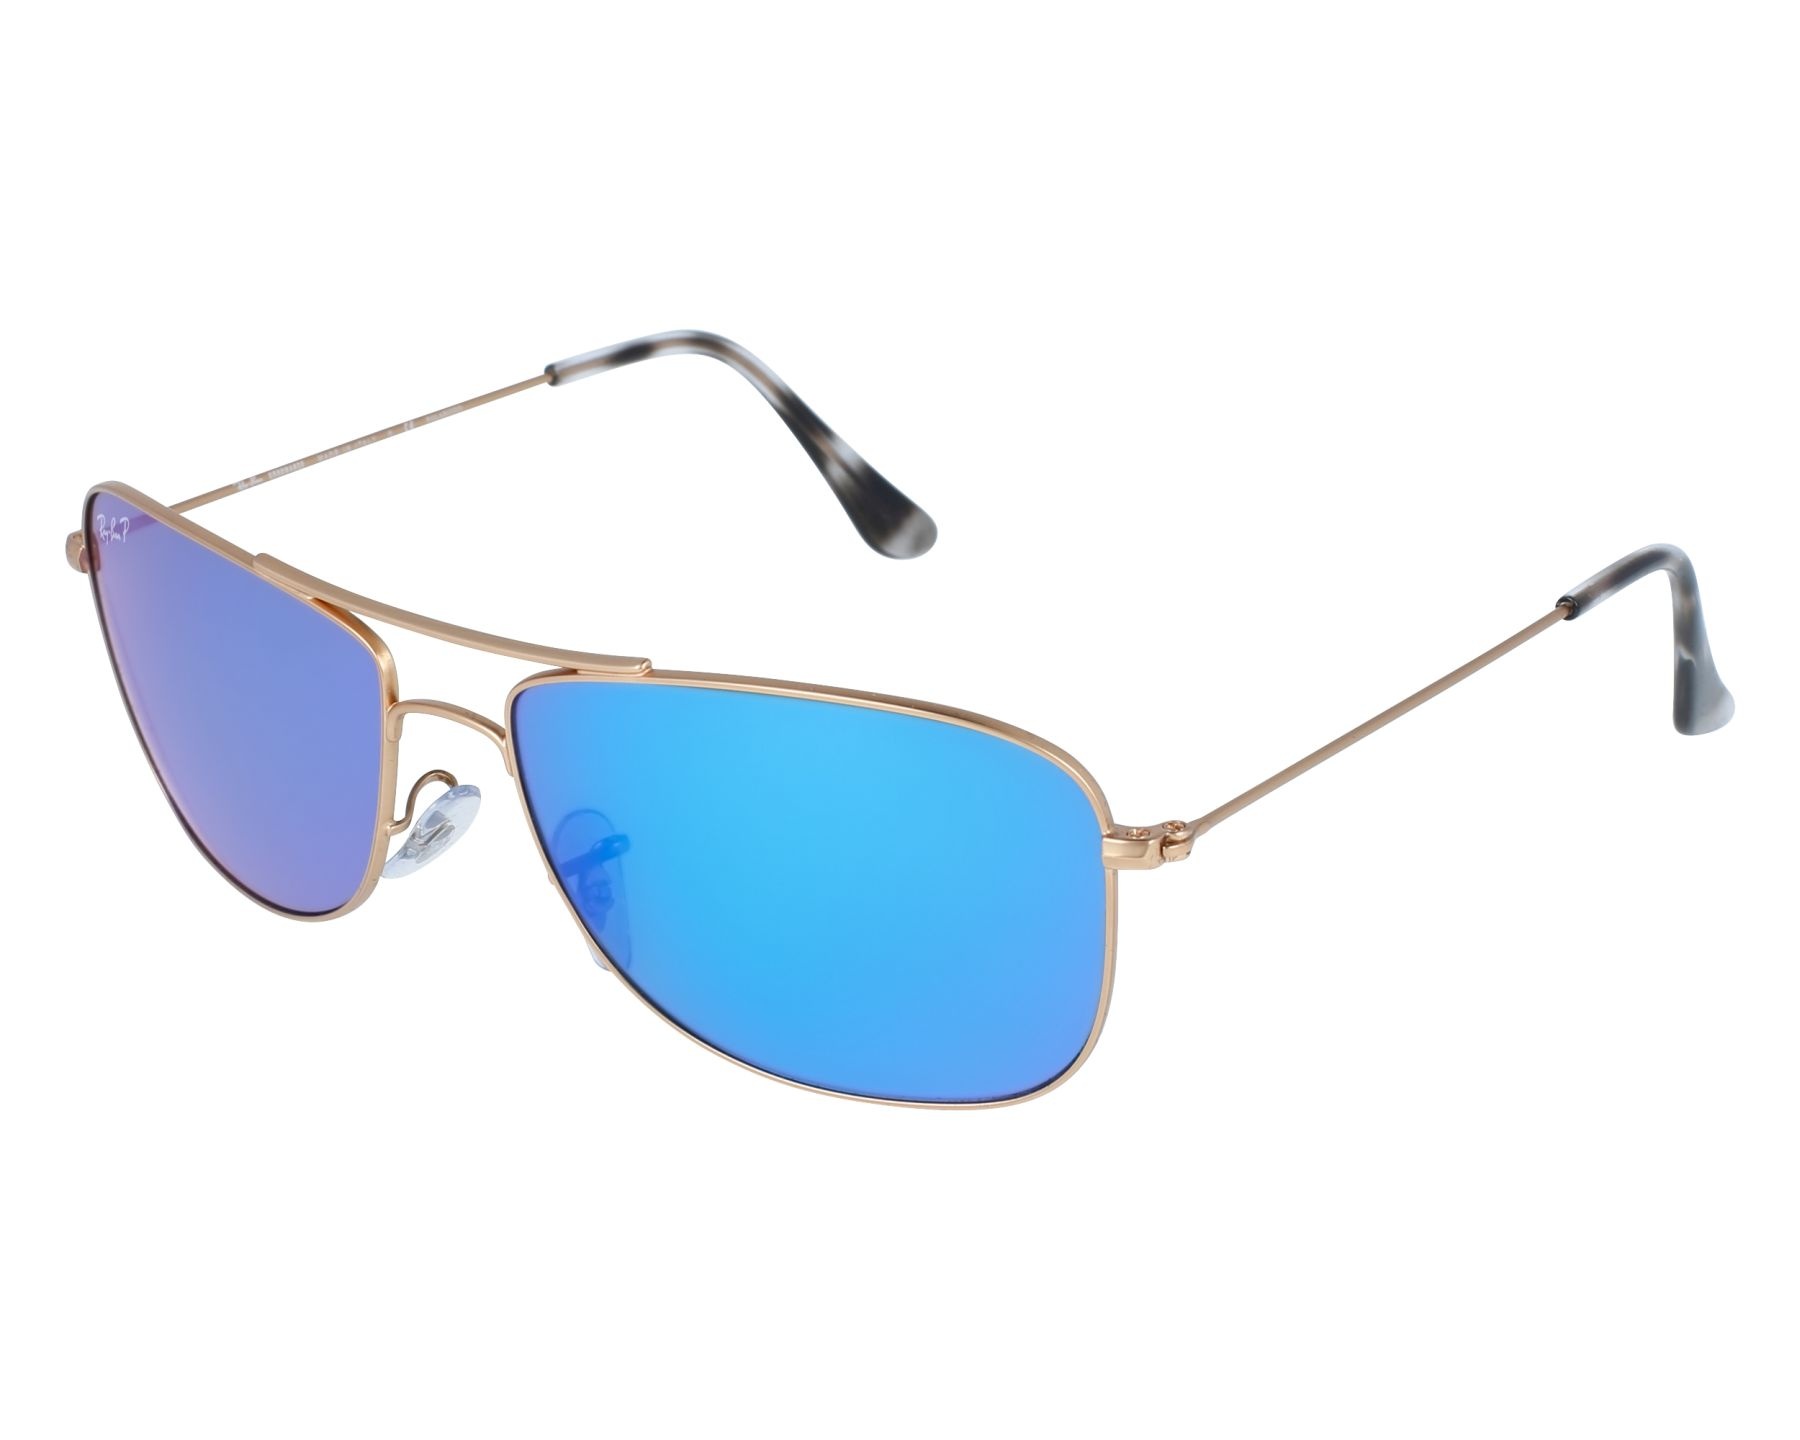 Ray-Ban RB3543 112/A1 59 mm/16 mm BEeGu63f